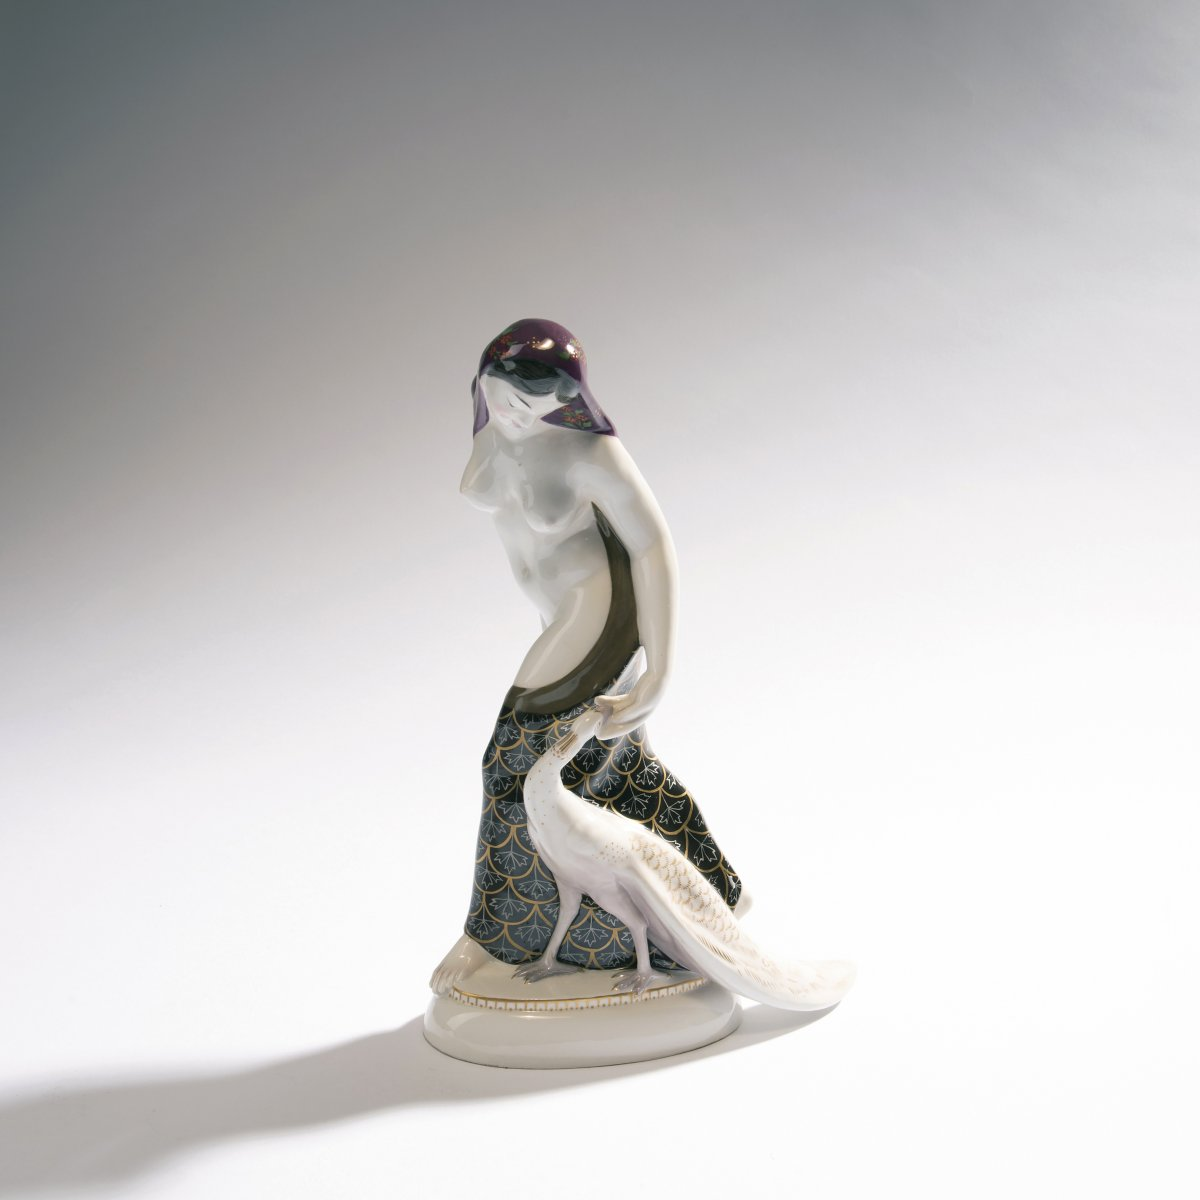 Adolph Amberg, 'Indian woman', 1910'Indian woman', 1910H. 26 cm. Made by KPM Berlin. Porcelain,